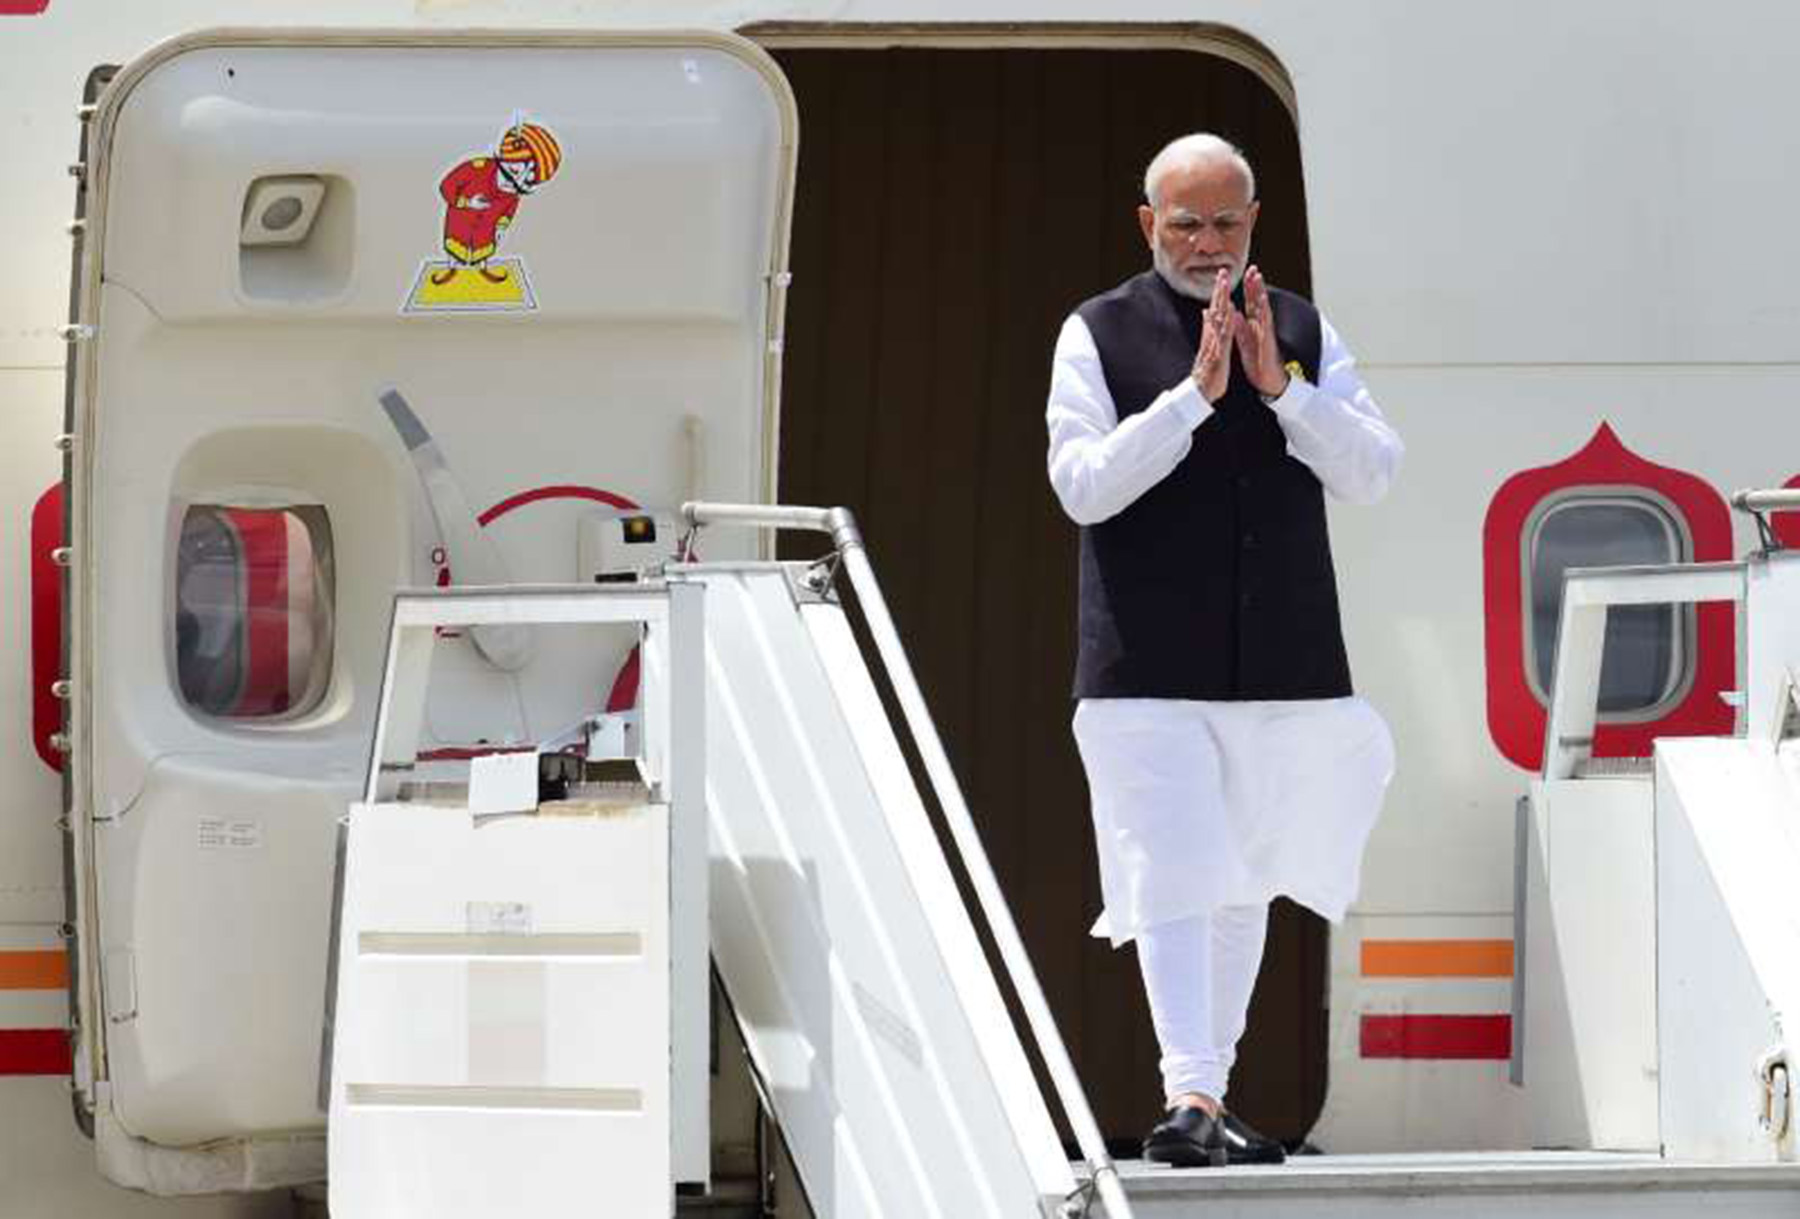 PM's special aircraft may be called Air Force One